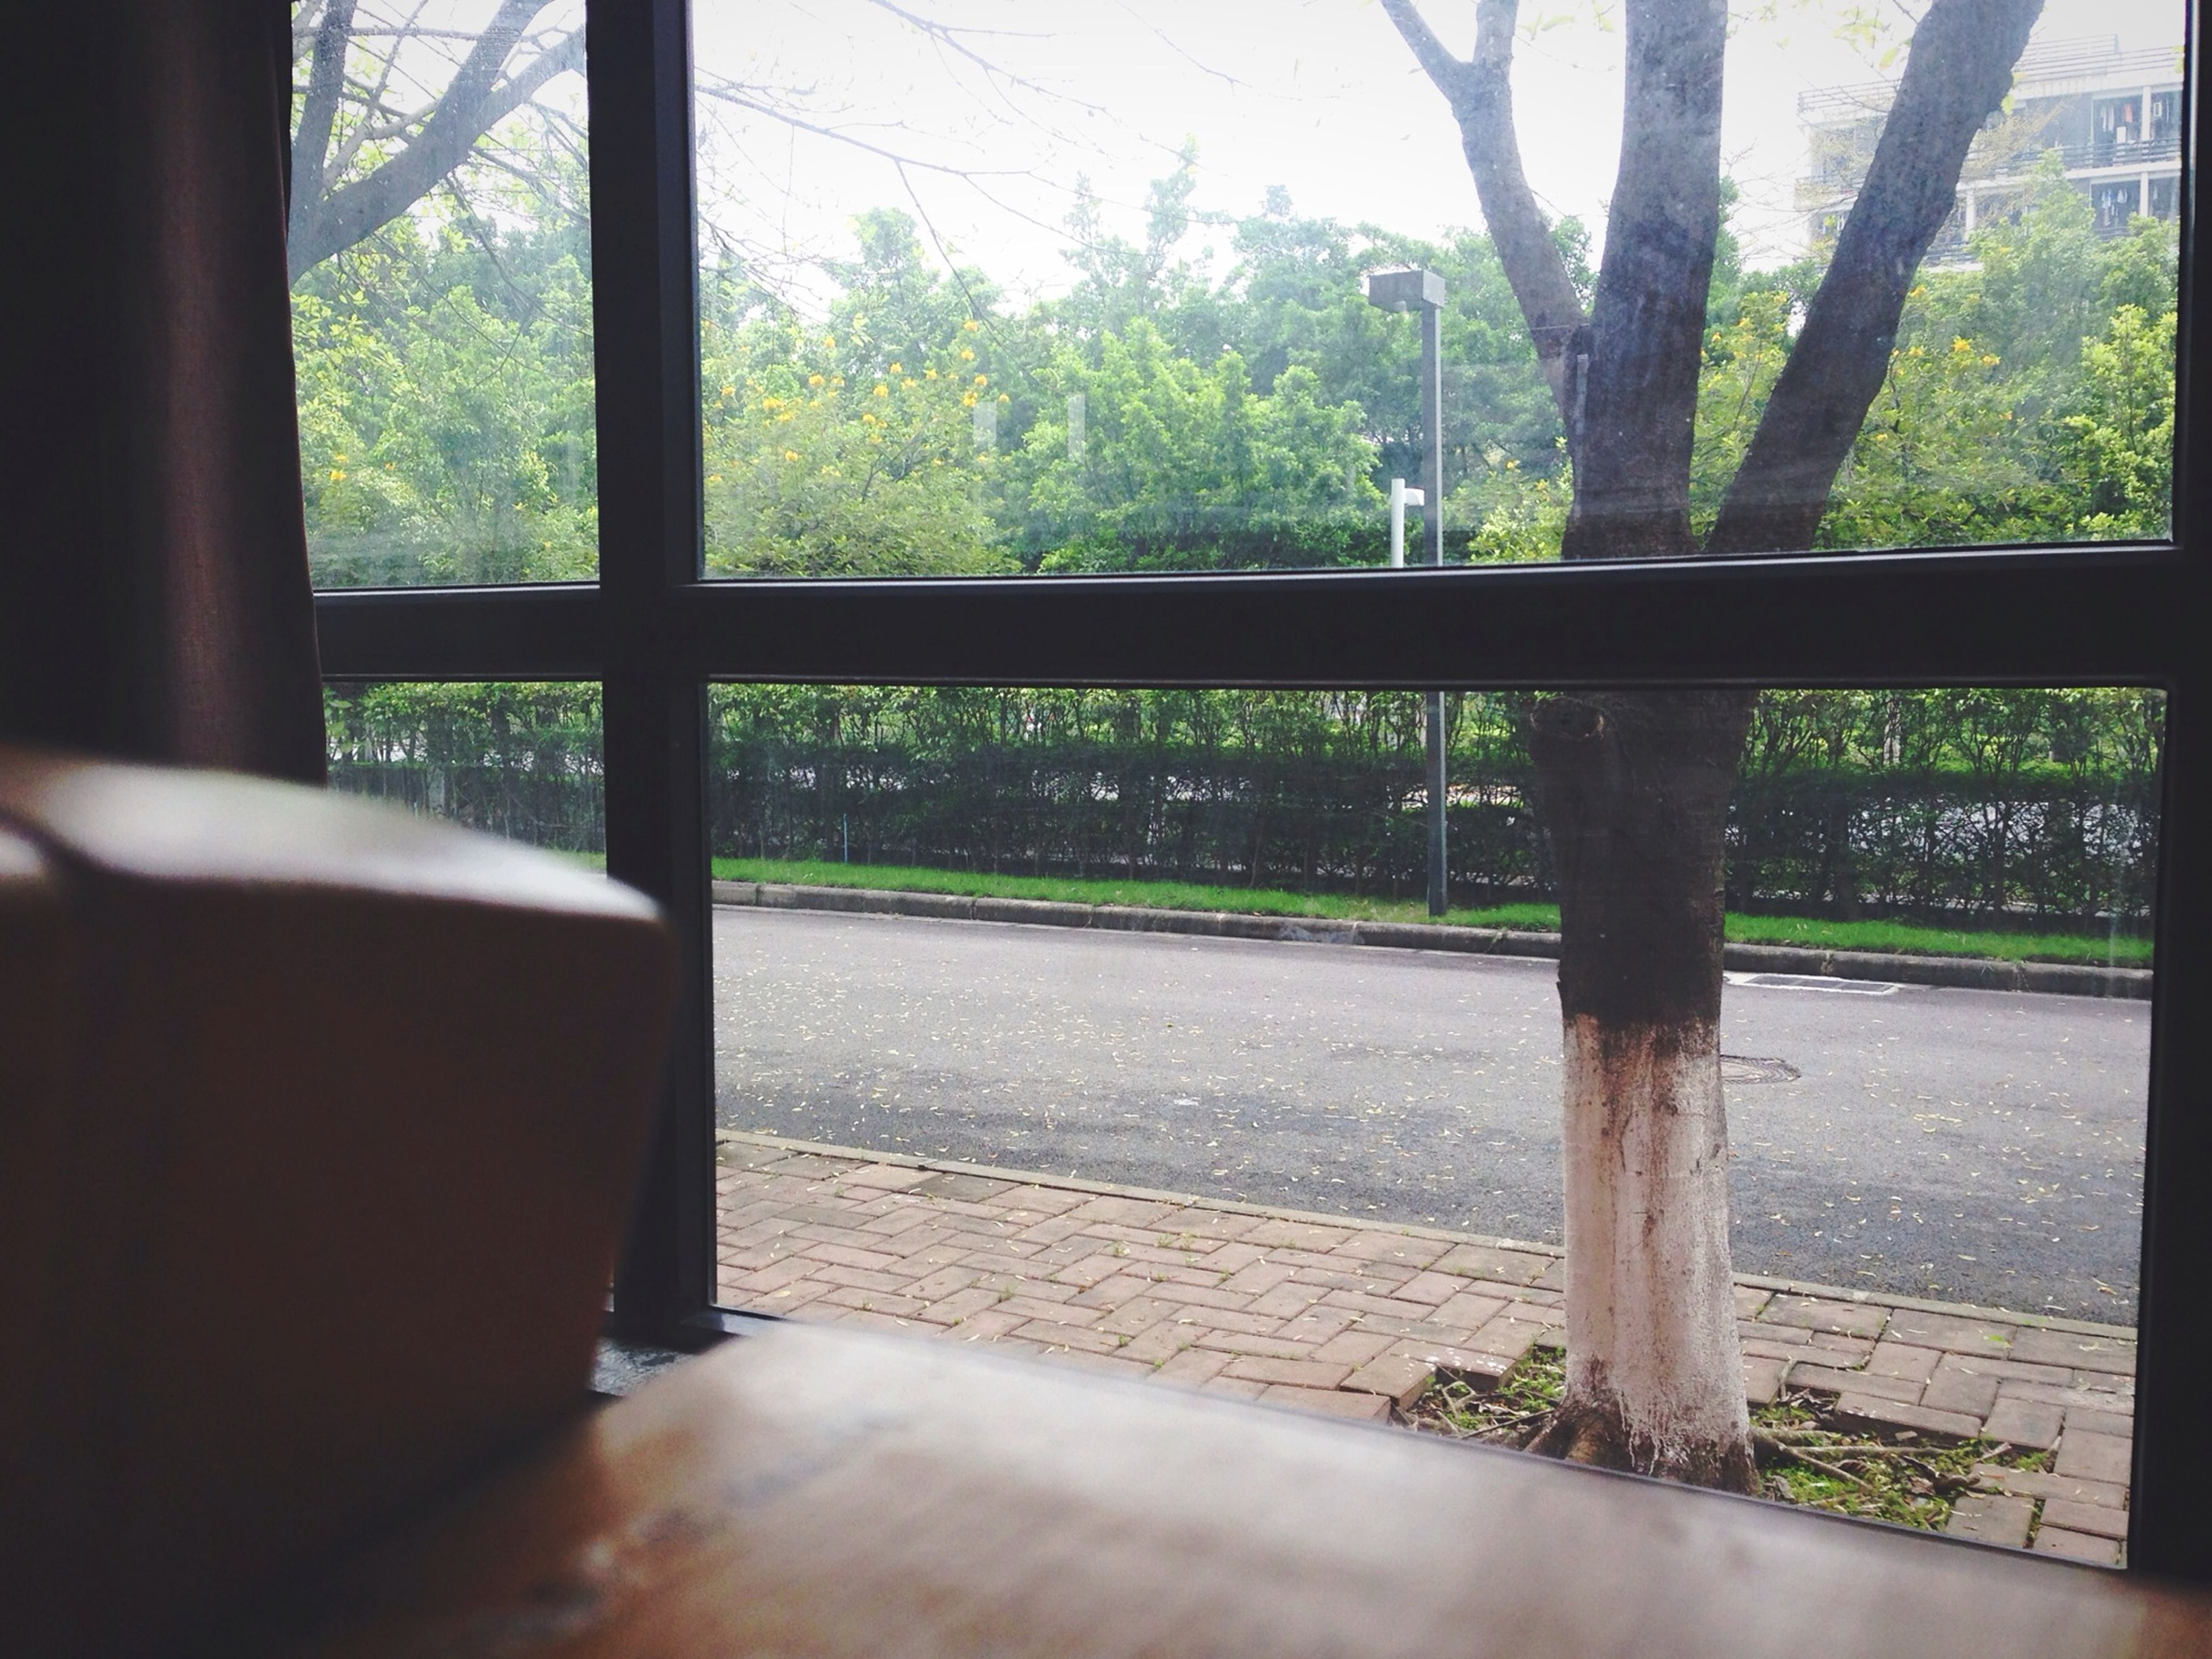 tree, window, indoors, transparent, railing, glass - material, sunlight, growth, day, shadow, no people, empty, nature, fence, tranquility, tree trunk, absence, looking through window, built structure